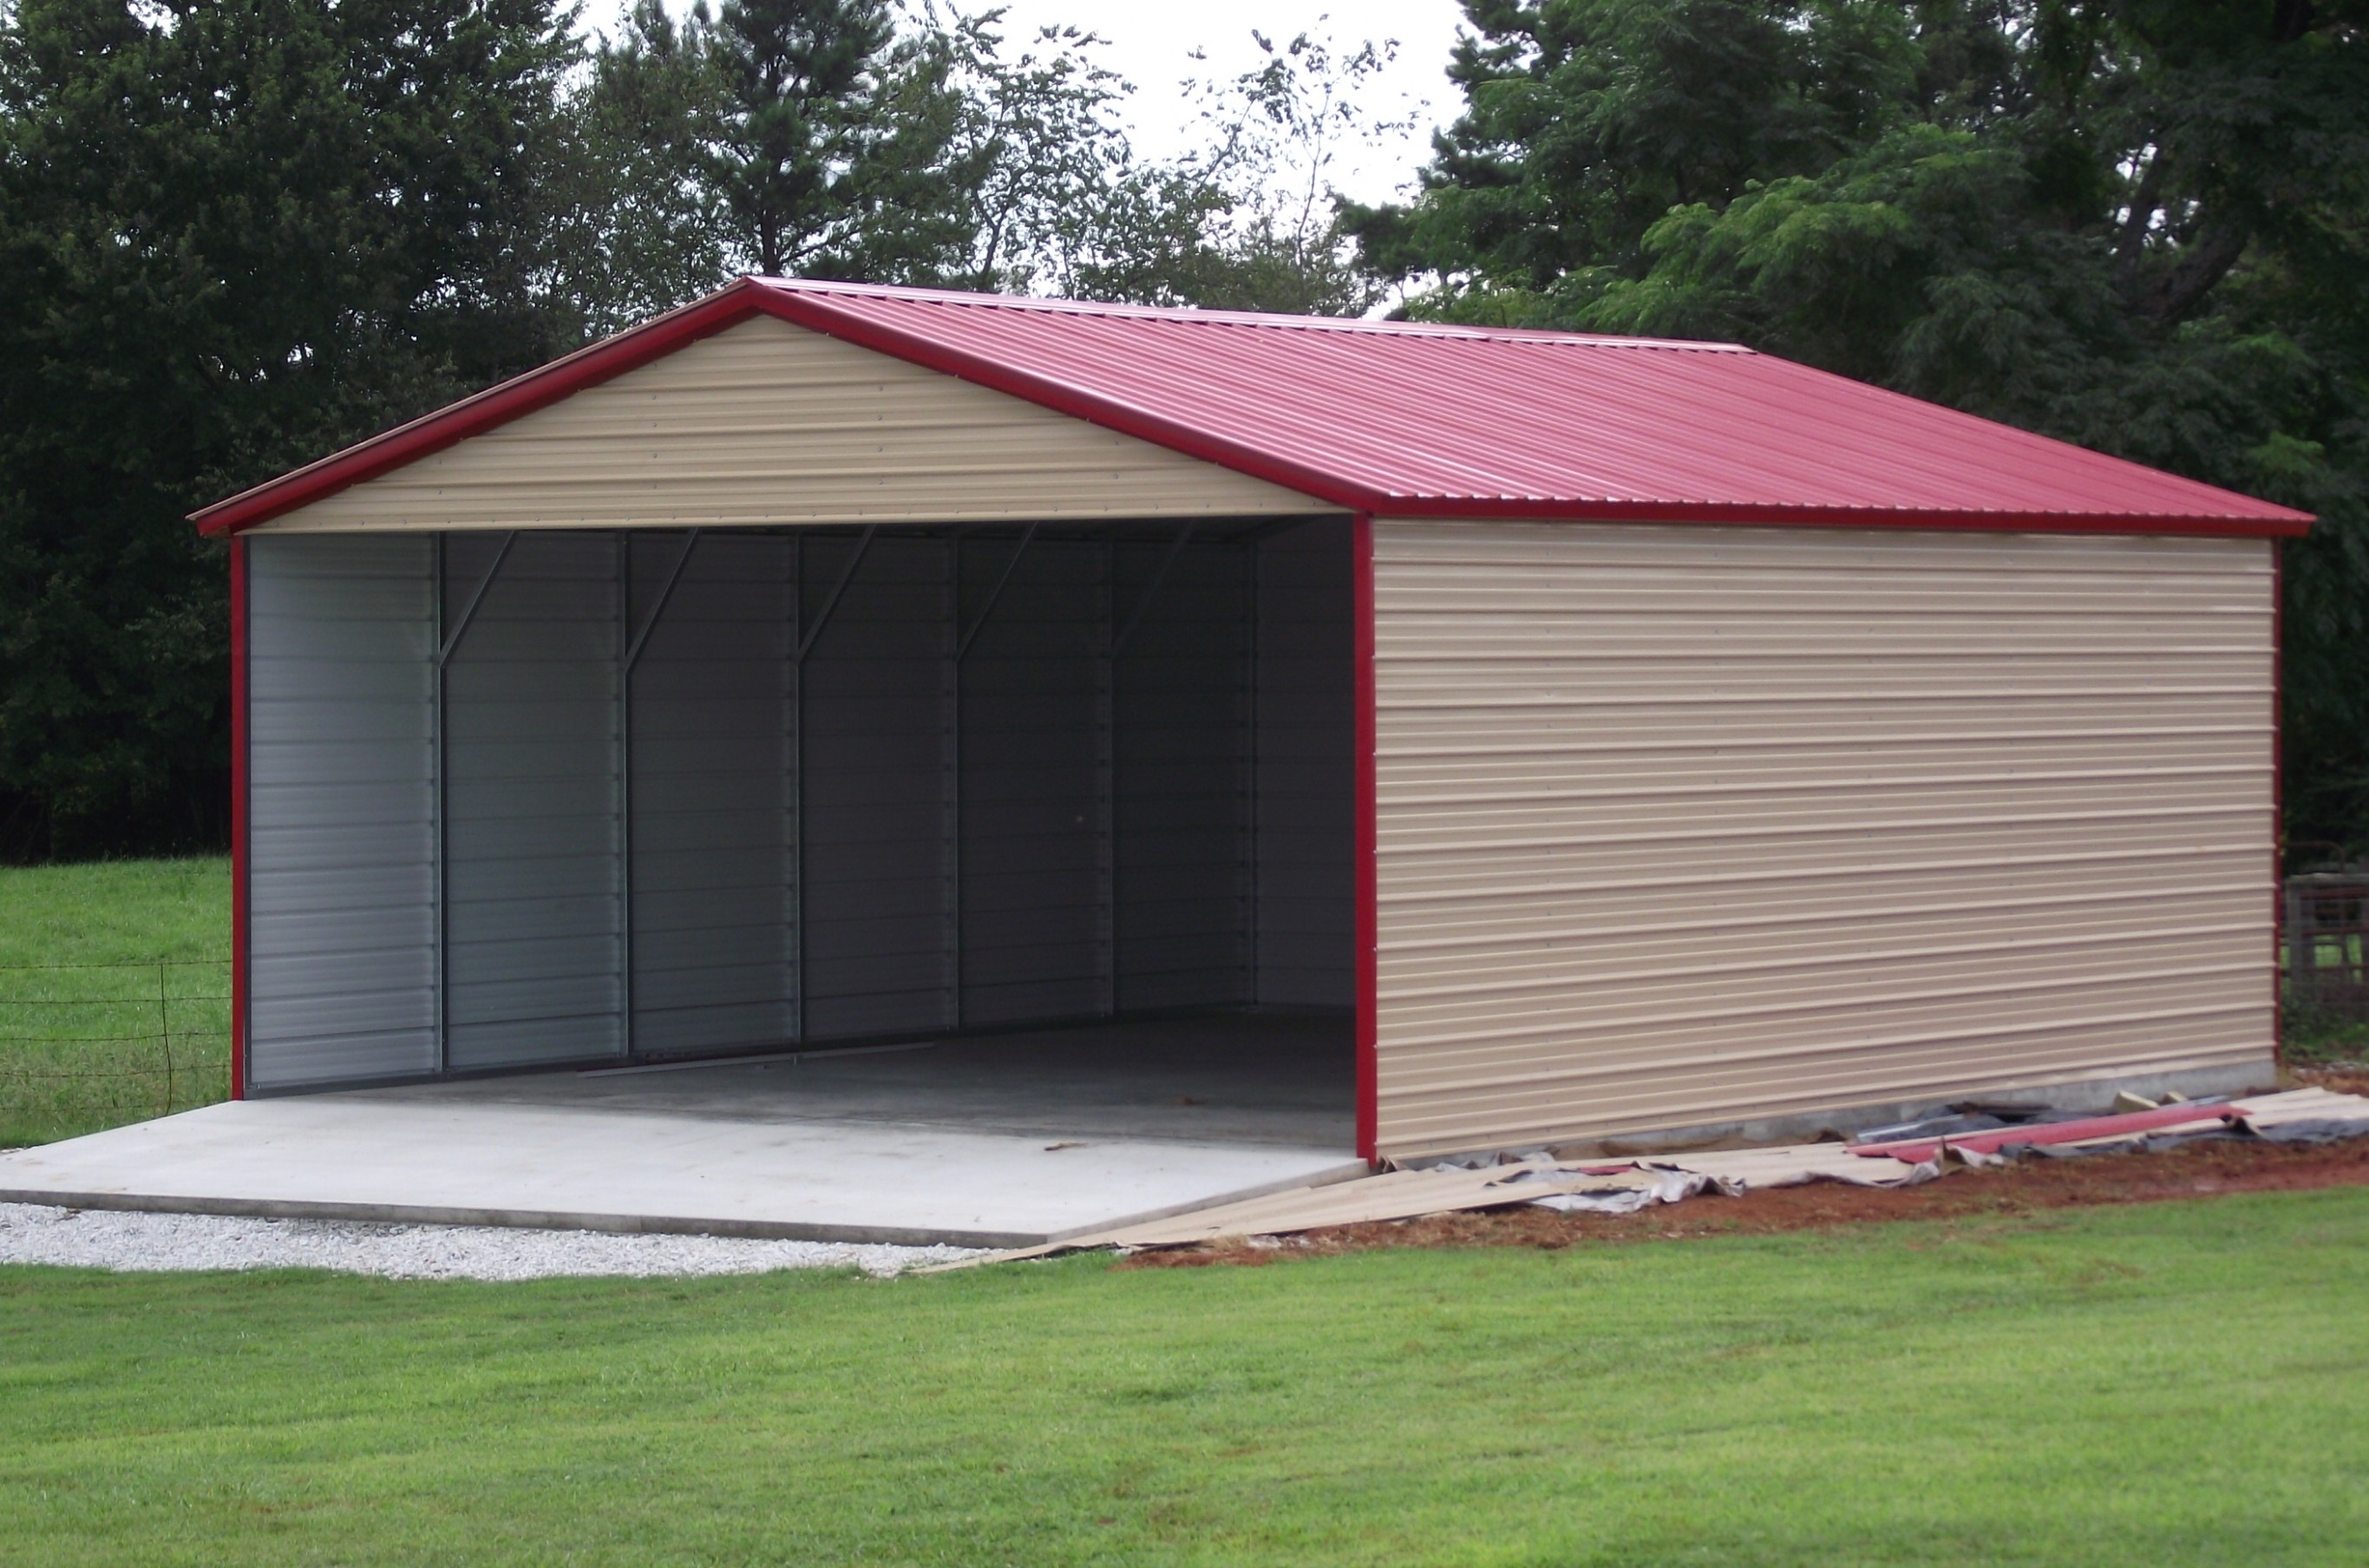 Things That Make You Love And Hate Carports And Garages For Sale | carports and garages for sale